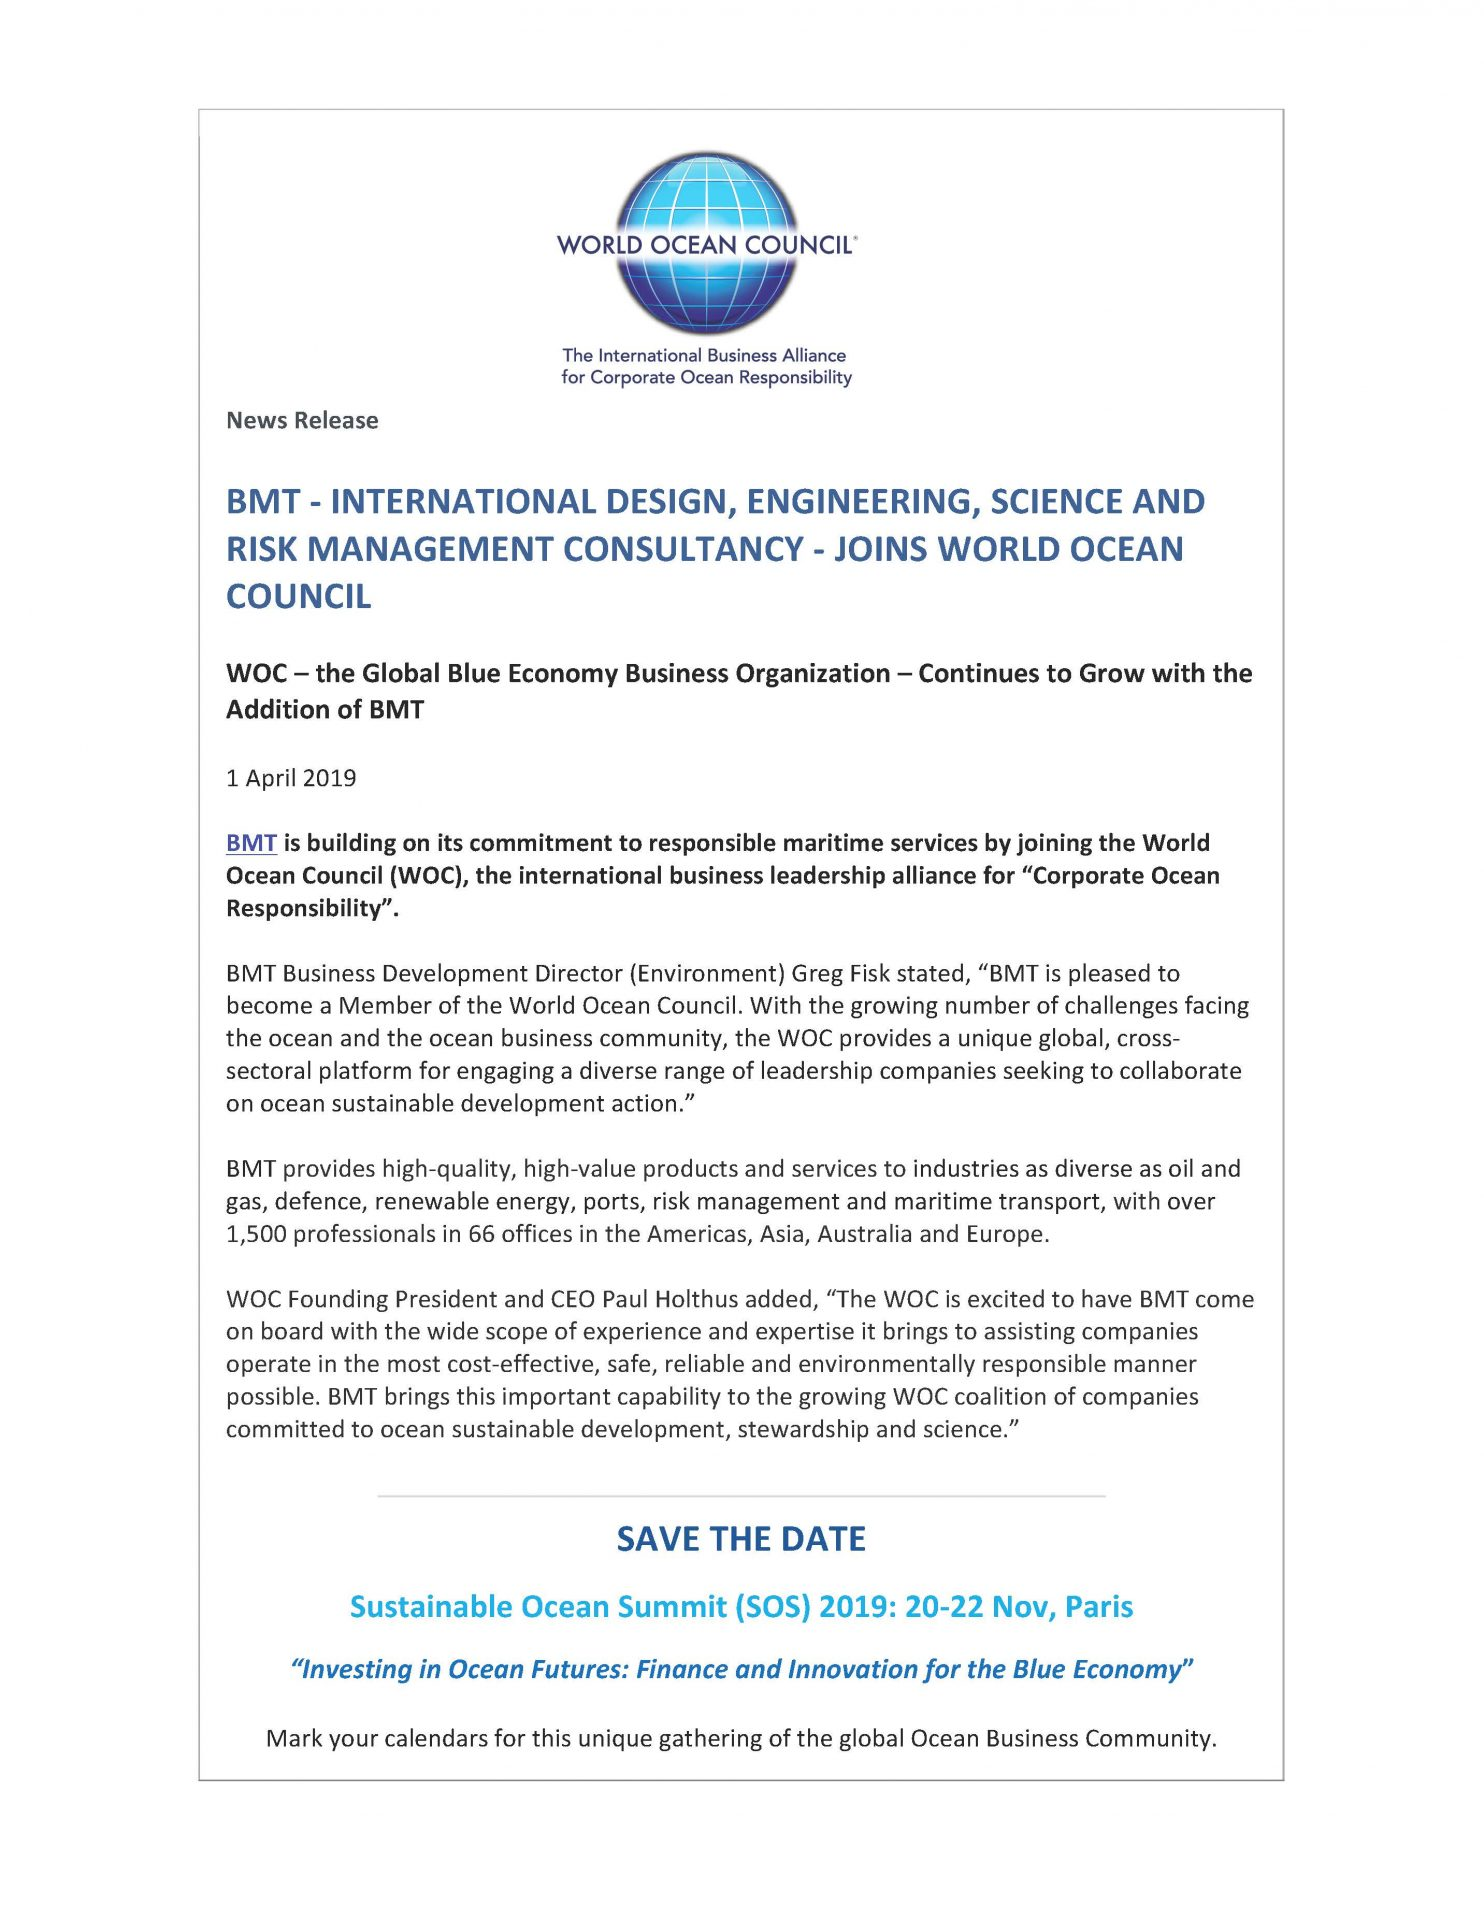 BMT - International Design, Engineering, Science and Risk Management Consultancy - Joins World Ocean Council - 1 April 2019